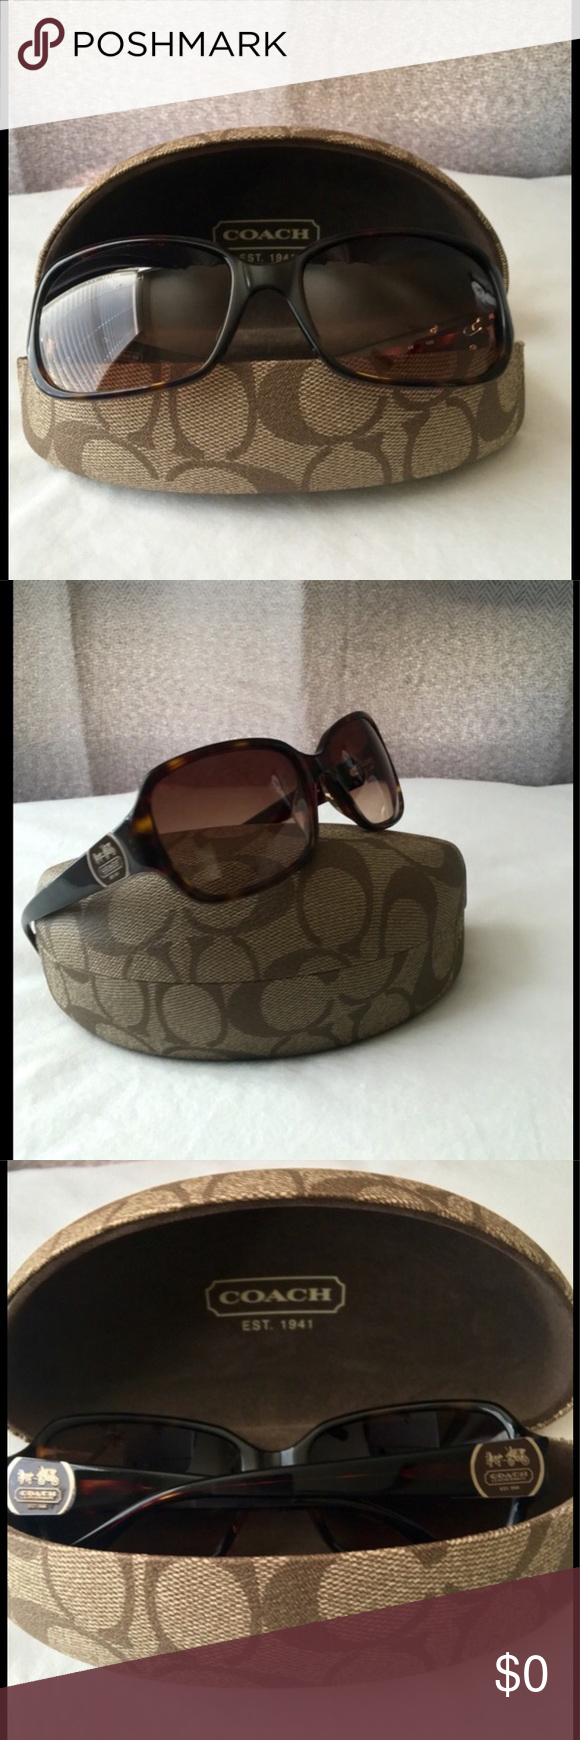 7ff1fff2f0e8 ... sweden coach sunglasses coach turquoise sunglasses s2048 5816125  preowned tiny scratch inside of arm very tiny